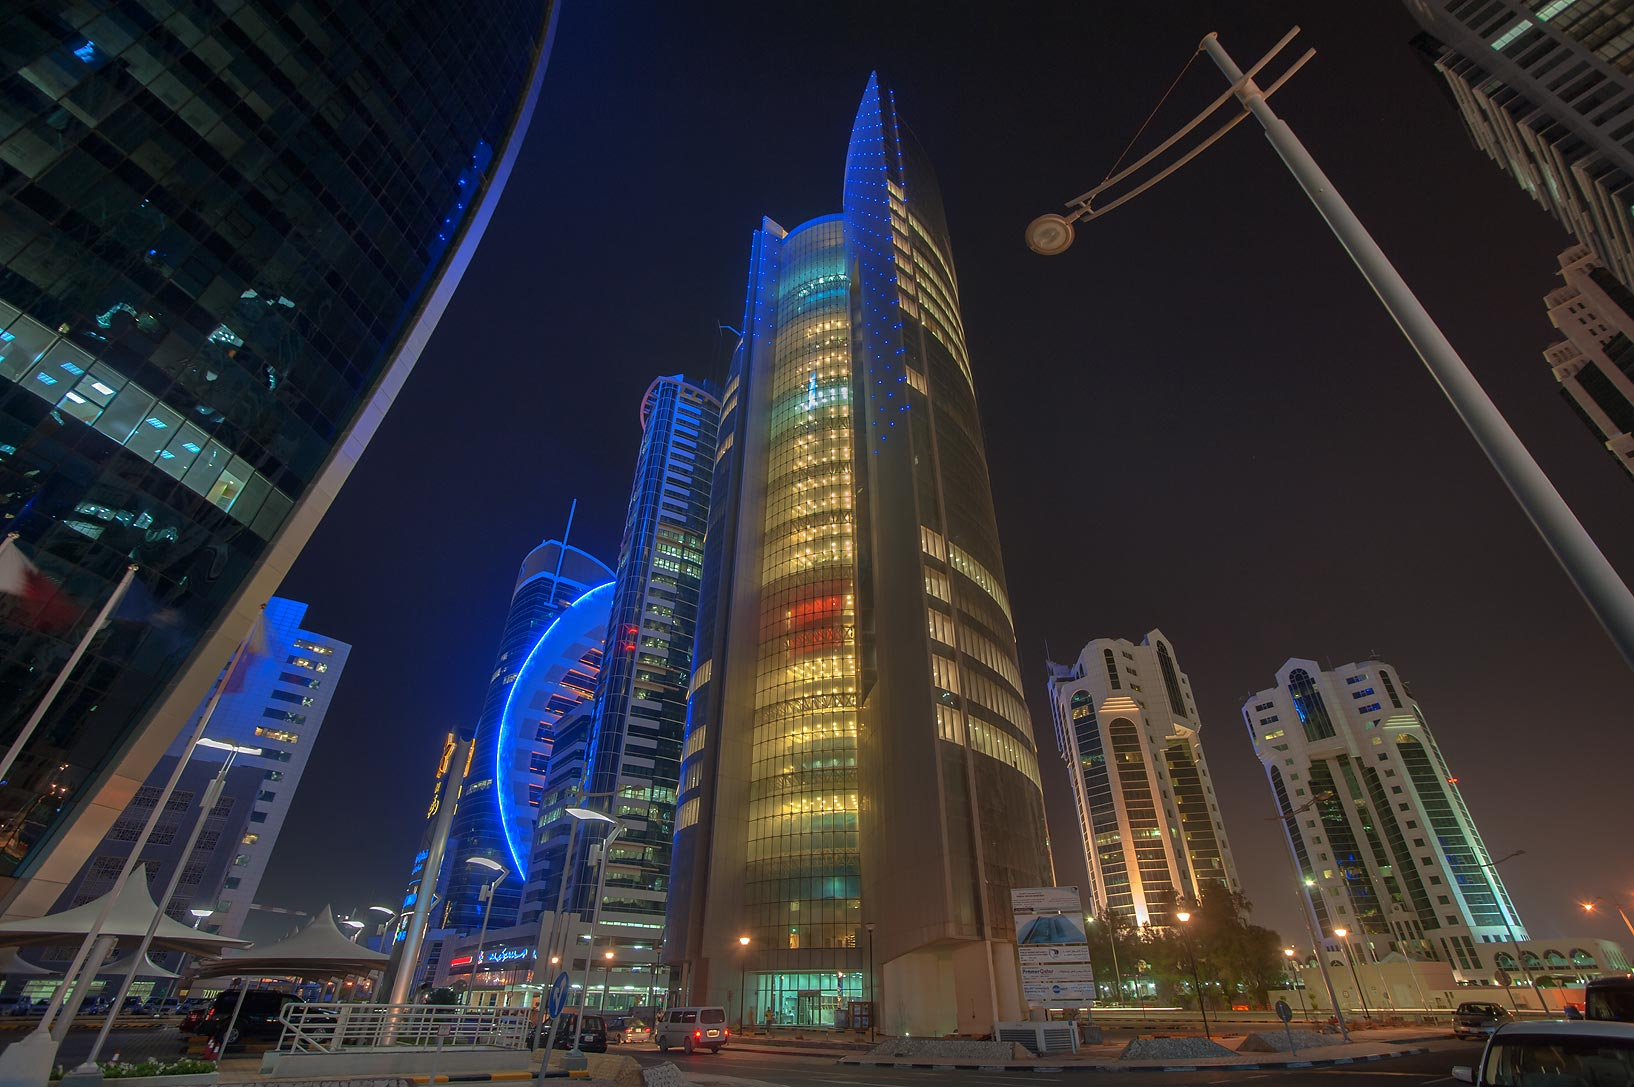 Area of Nakheel Tower in West Bay at evening. Doha, Qatar